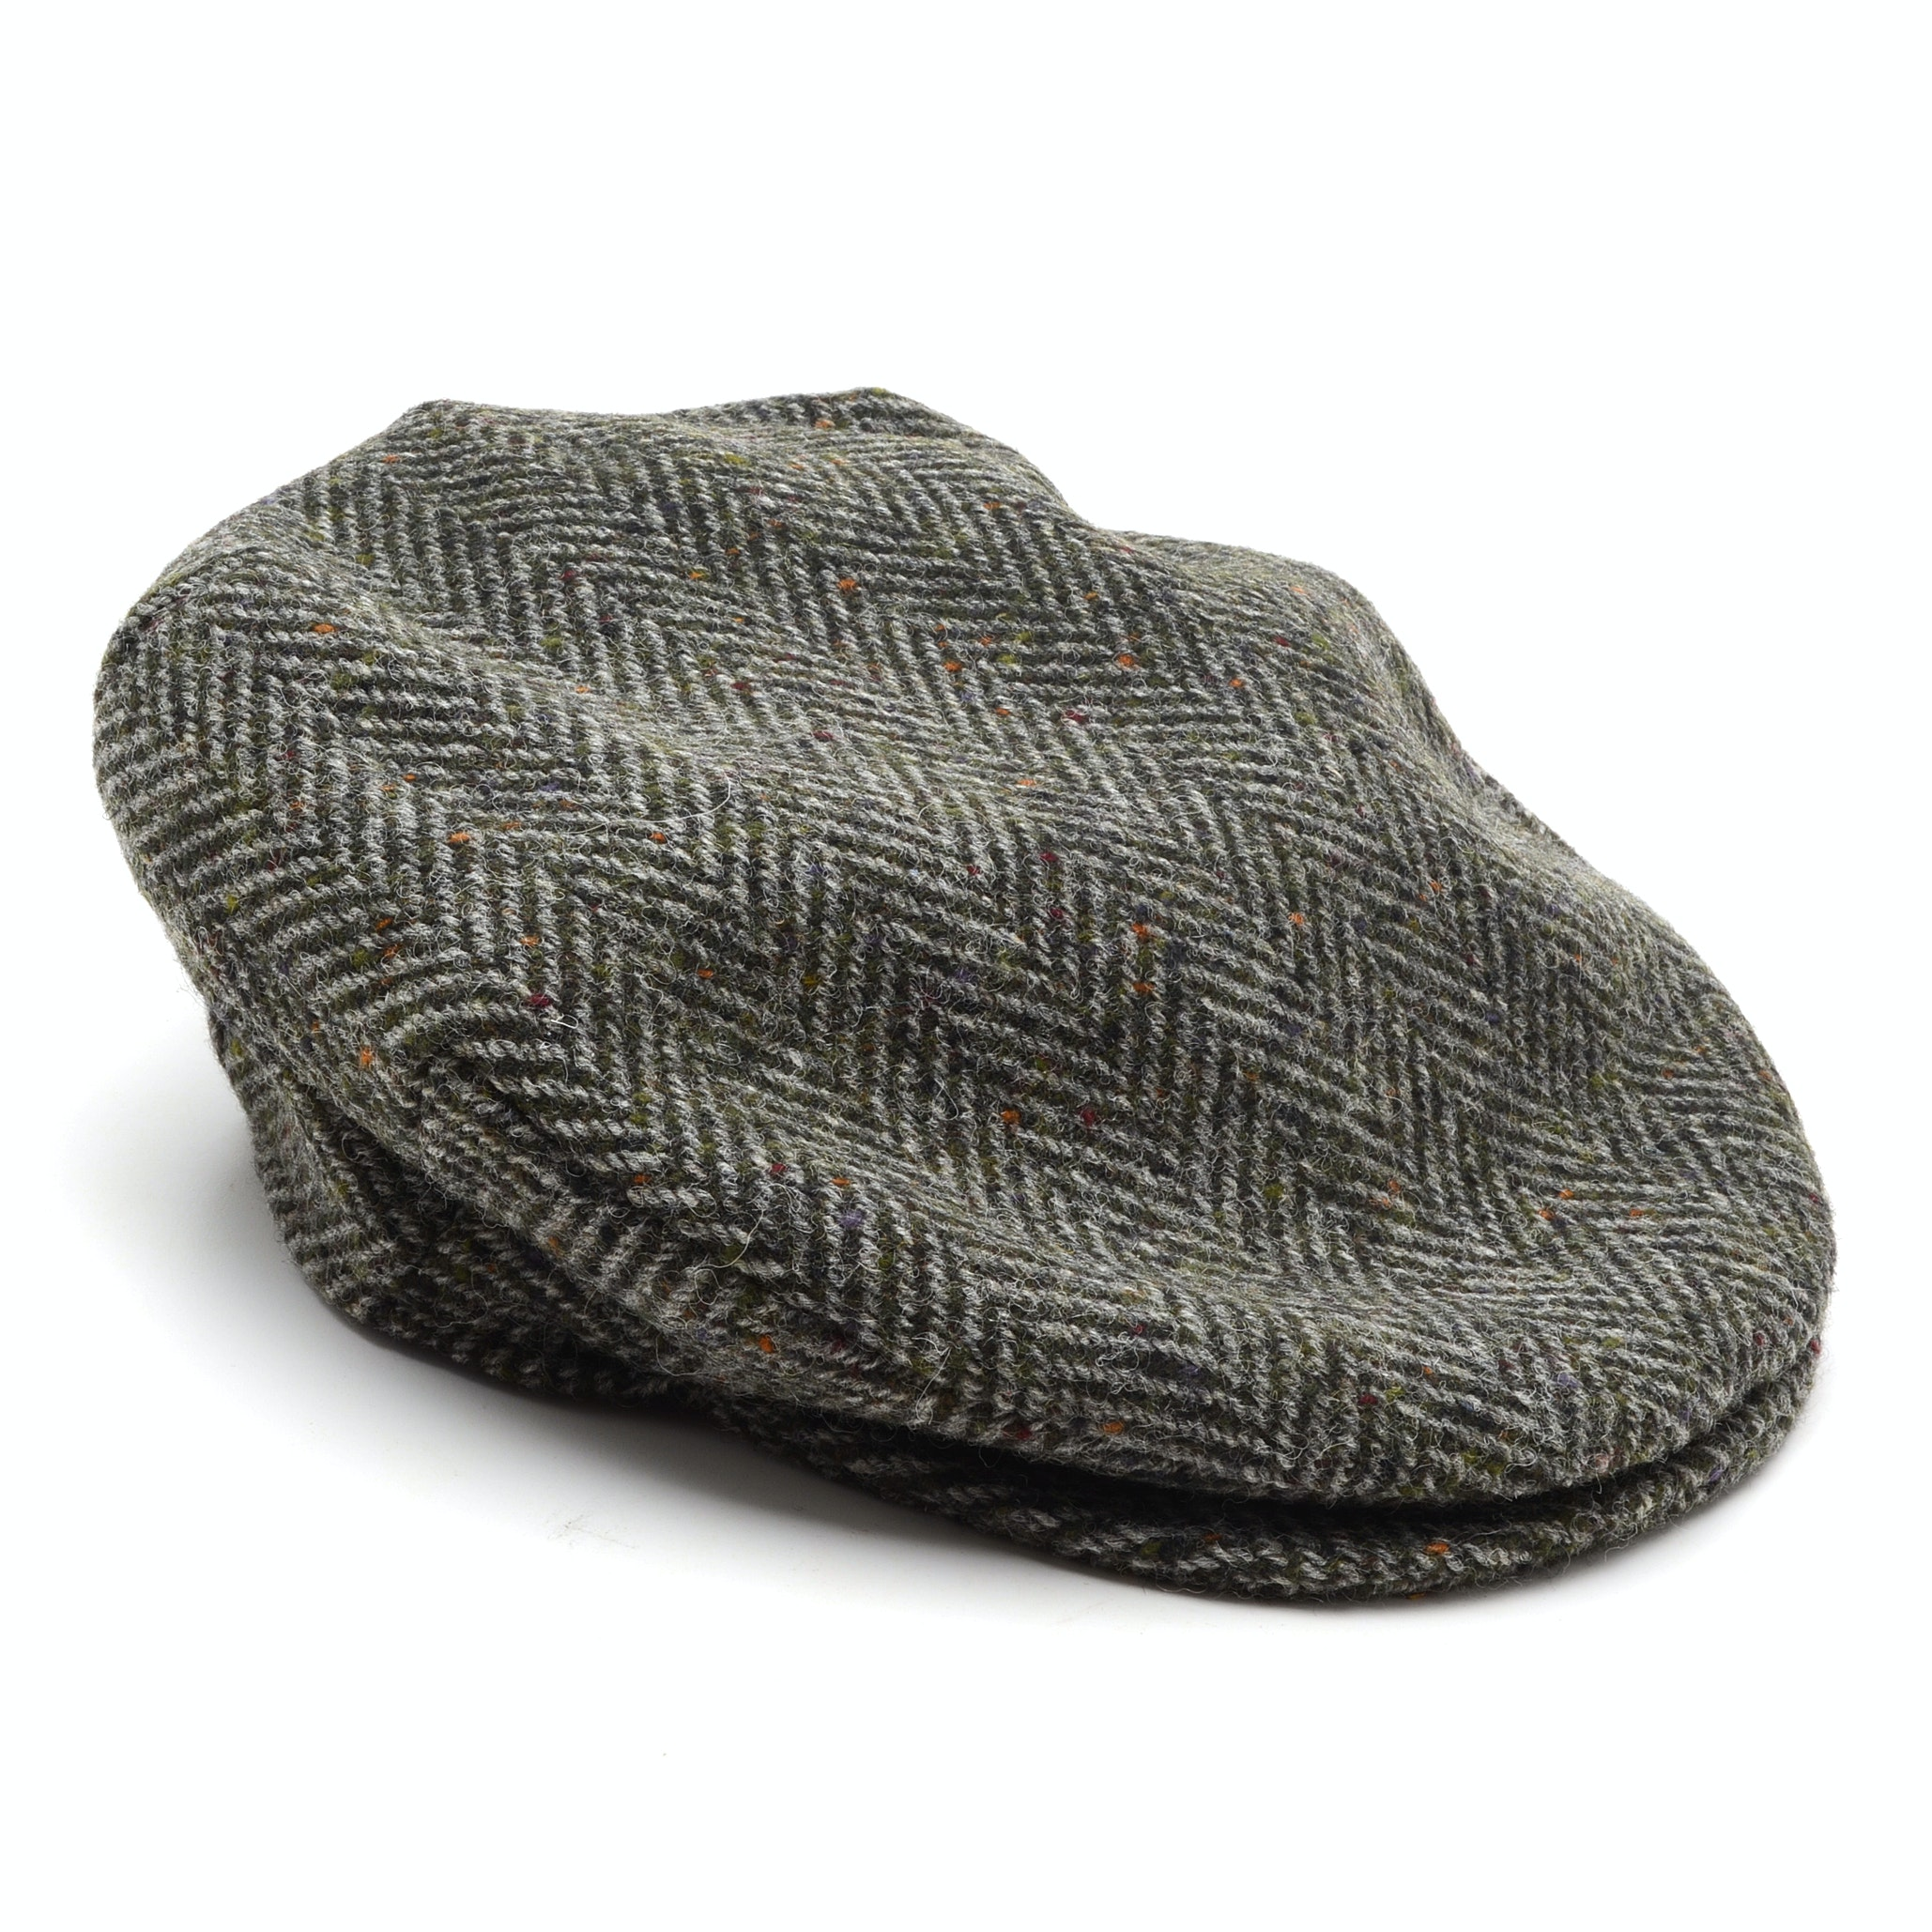 Gray Tweed Donegal Touring Cap by Hanna Hats, Handcrafted in Ireland